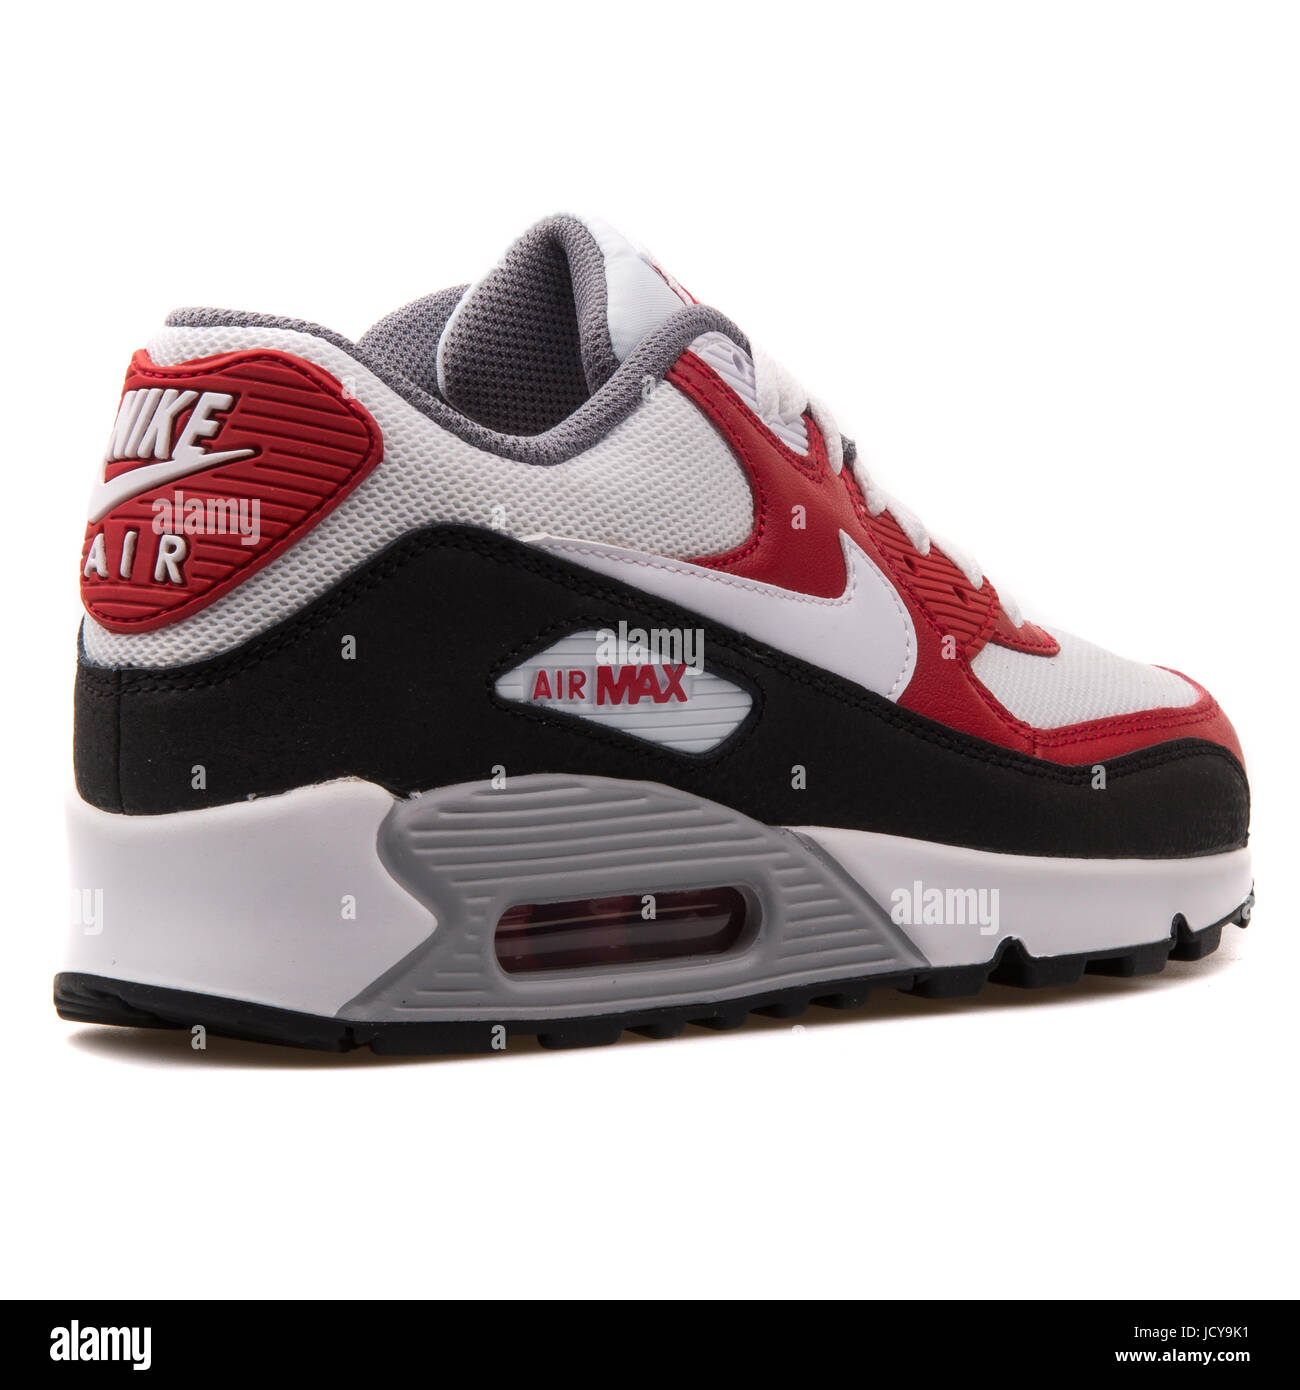 af3402a0 Nike Air Max 90 Mesh (GS) White, Red and Black Youth's Running Shoes -  724824-102